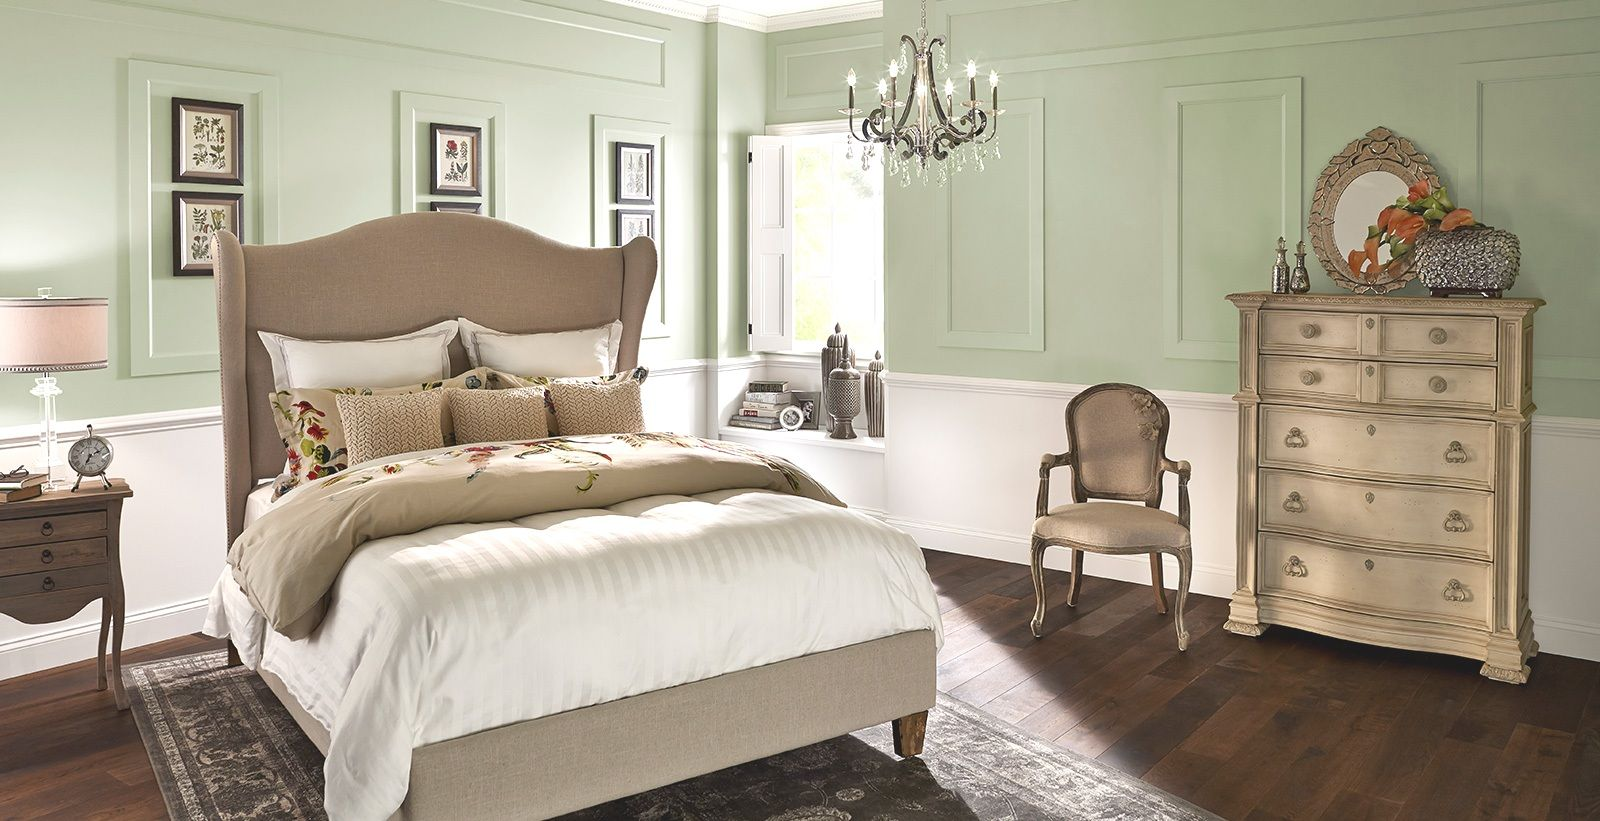 30 Awesome Blissful Bedroom Color Scheme Ideas | Soothing ...